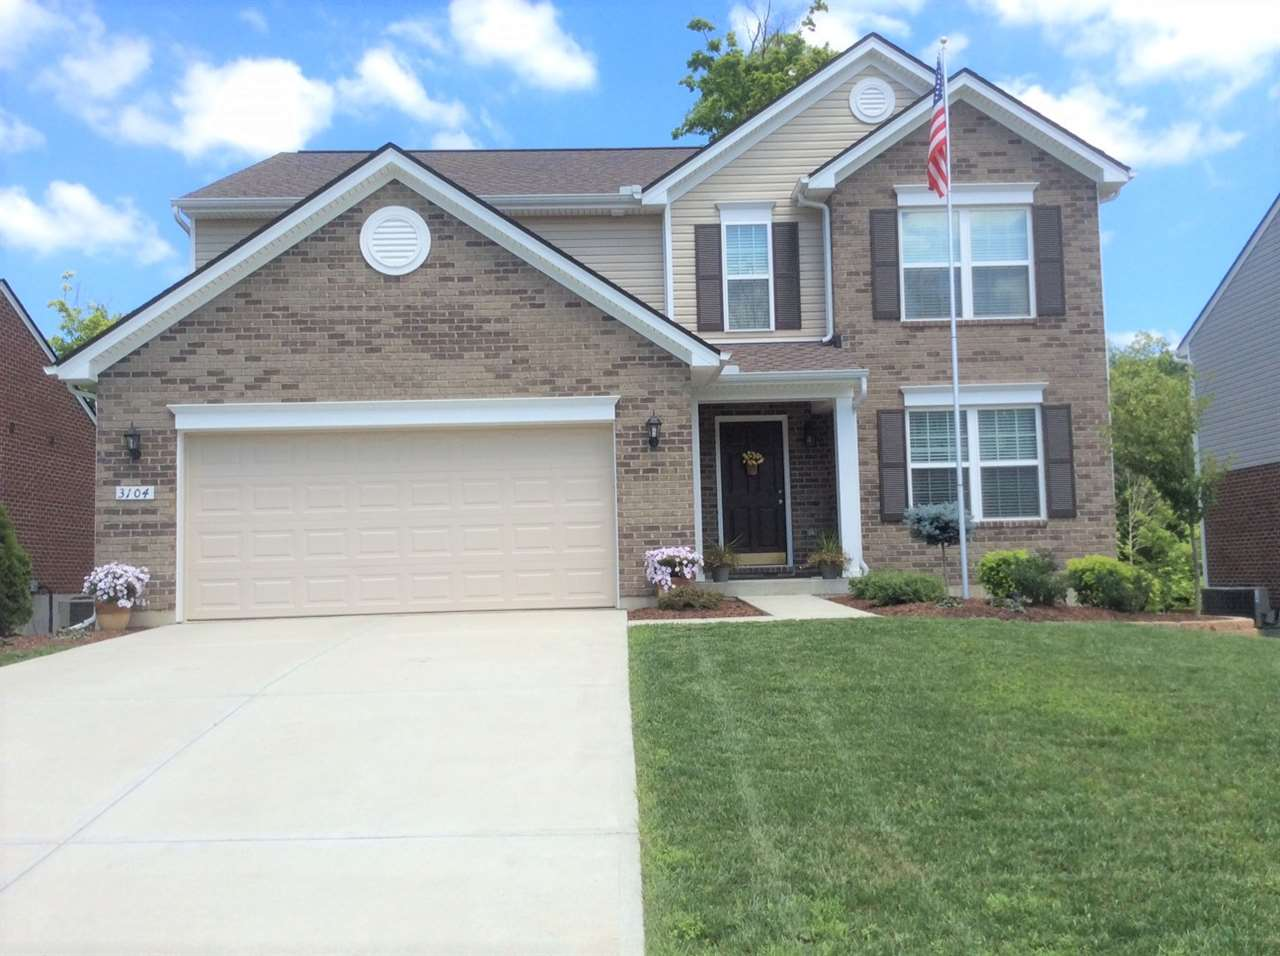 Photo 1 for 3104 Silverbell Way Independence, KY 41051